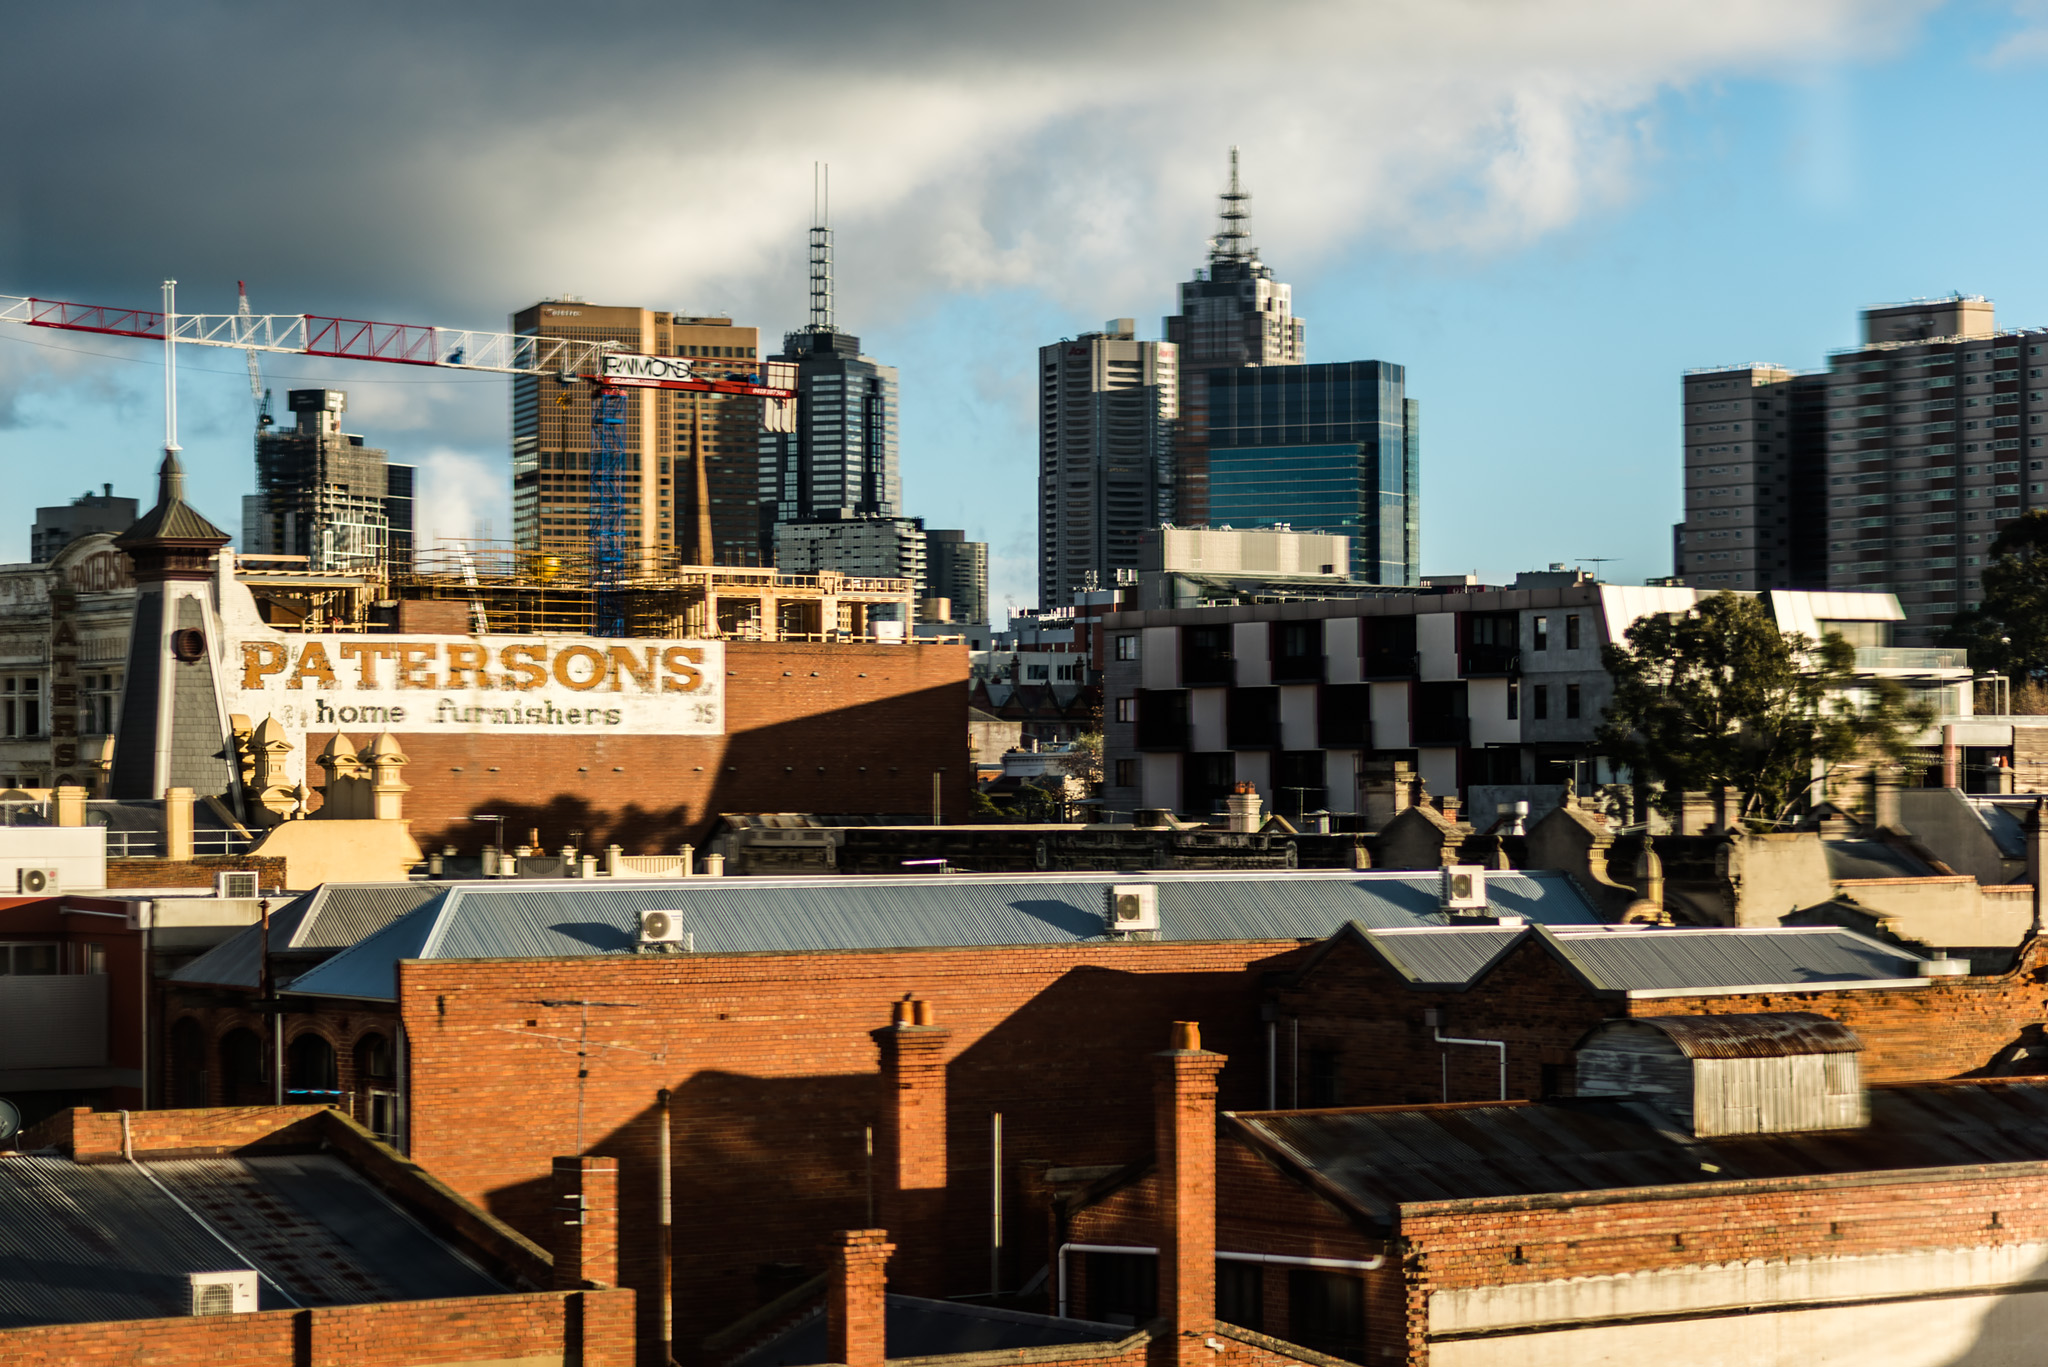 View from the apartment warped by the heater. Melbourne © Daniel Purvis 2016